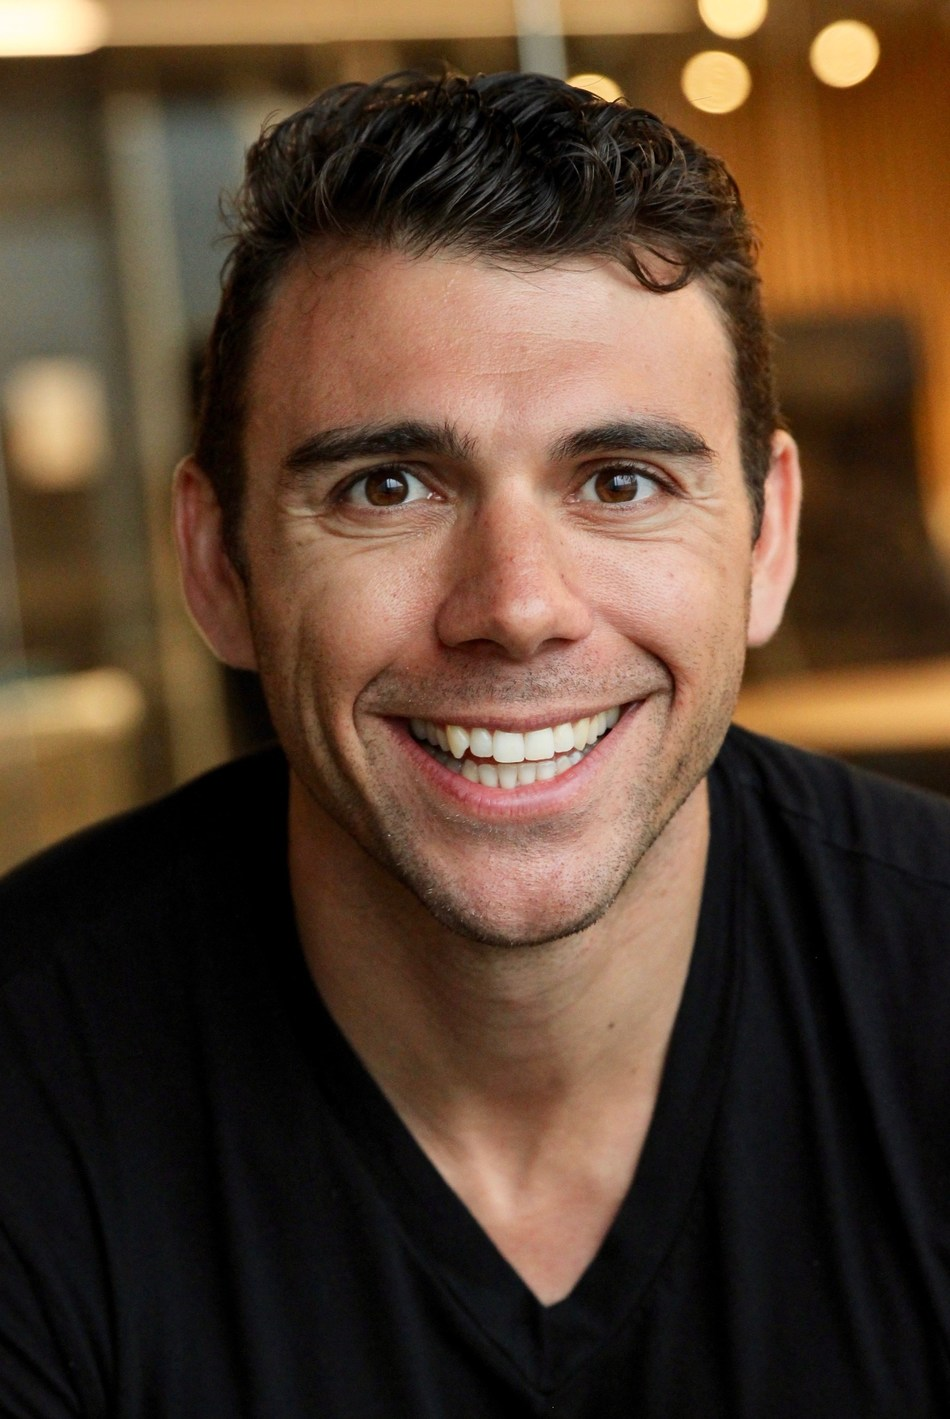 Los Angeles-based tech startup ServiceTitan has named Chris Trombetta as their new Chief People Officer.